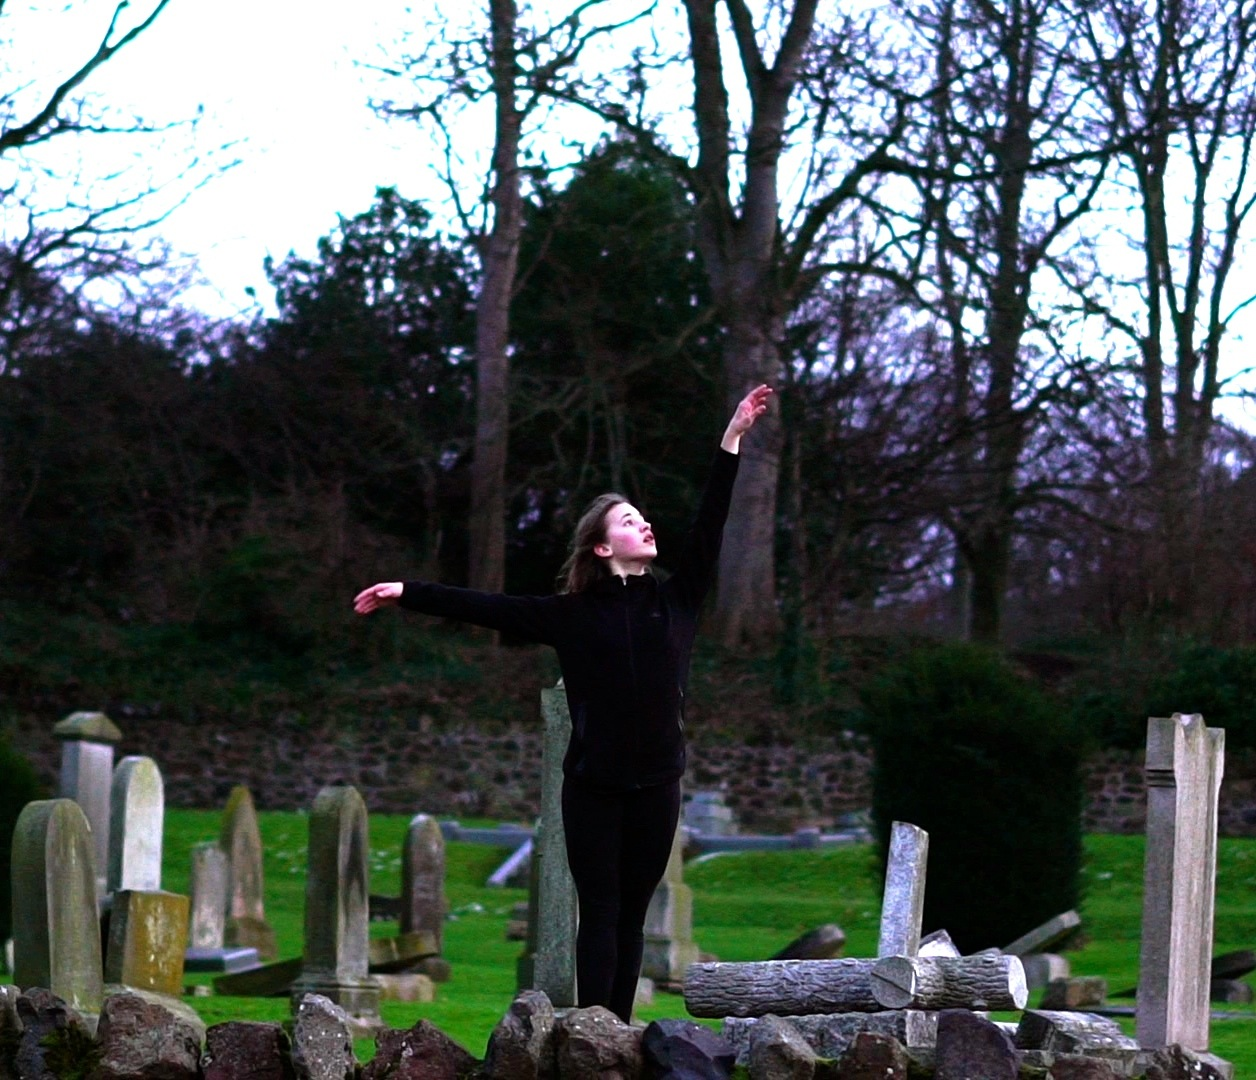 ( Still image from Roxana Vilk's new  Art/Films to be screened at CoastWord - featuring dancer Dido Knoben. Image copyright Roxana Vilk)